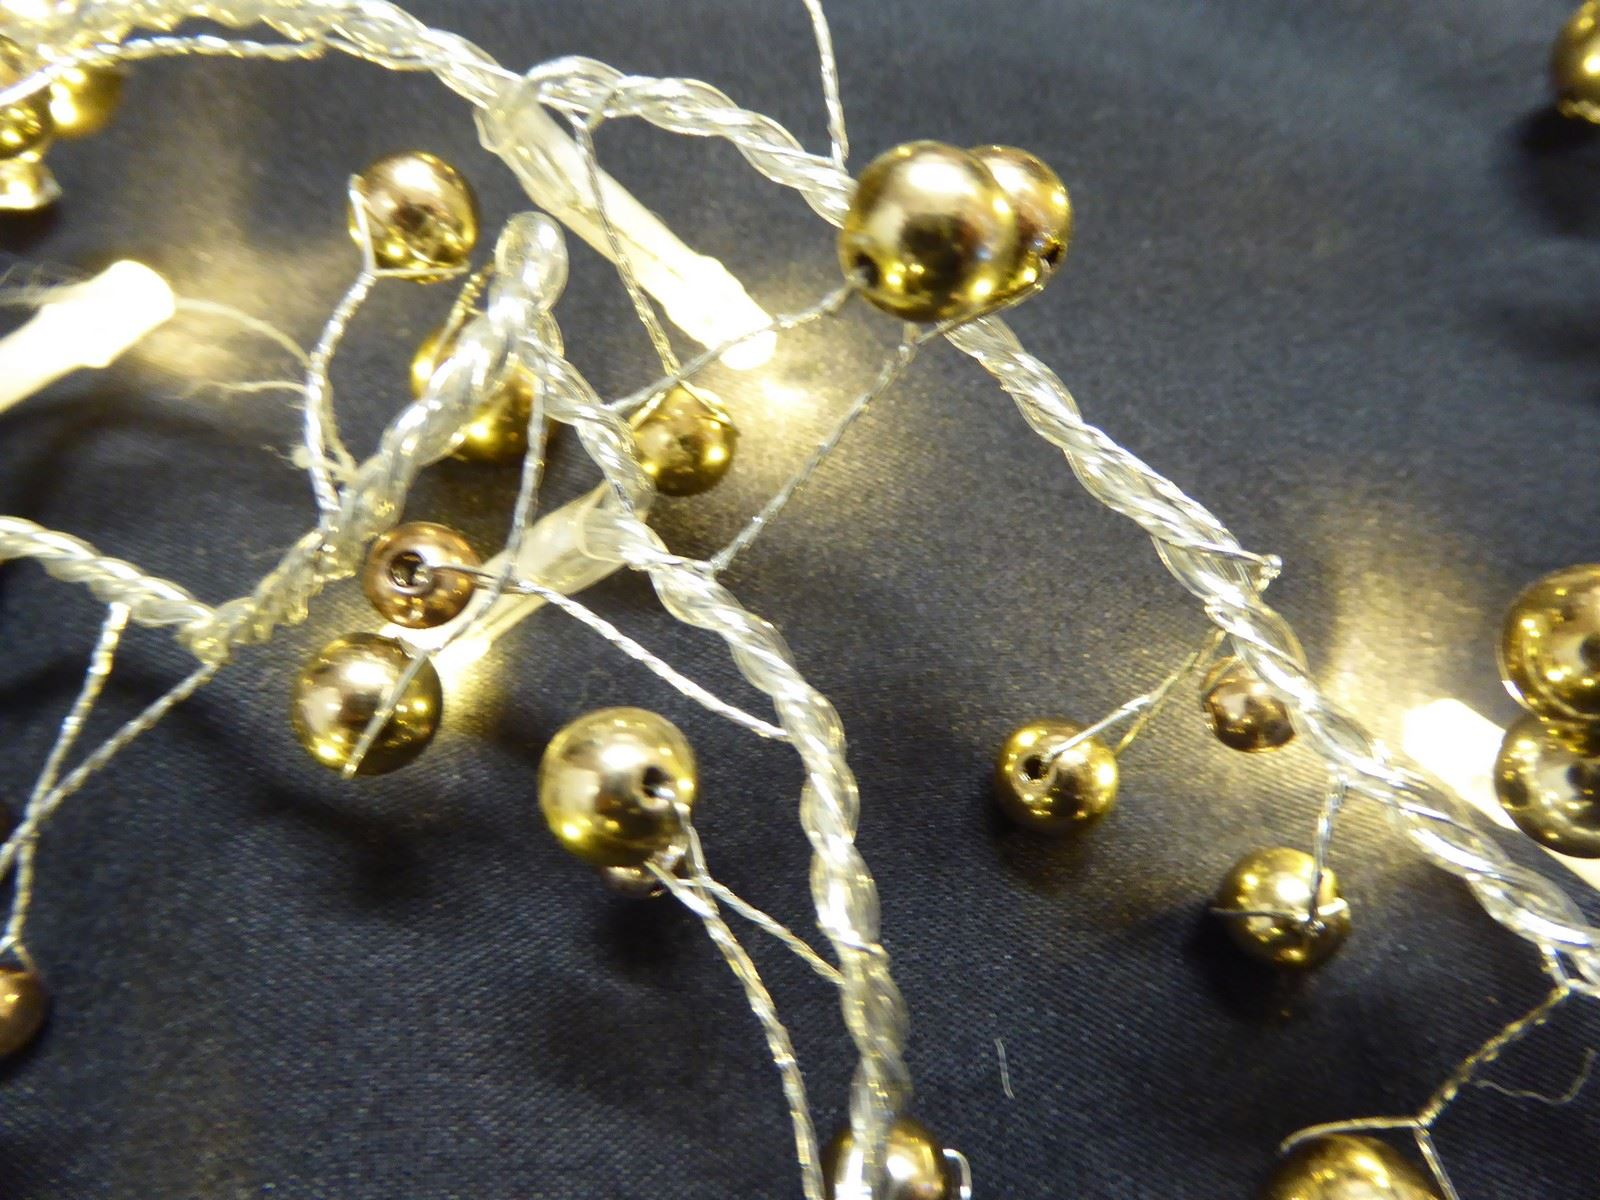 6ft-1-8m-Berry-Twig-Artificial-Christmas-Garland-With-Lights-Decoration thumbnail 4